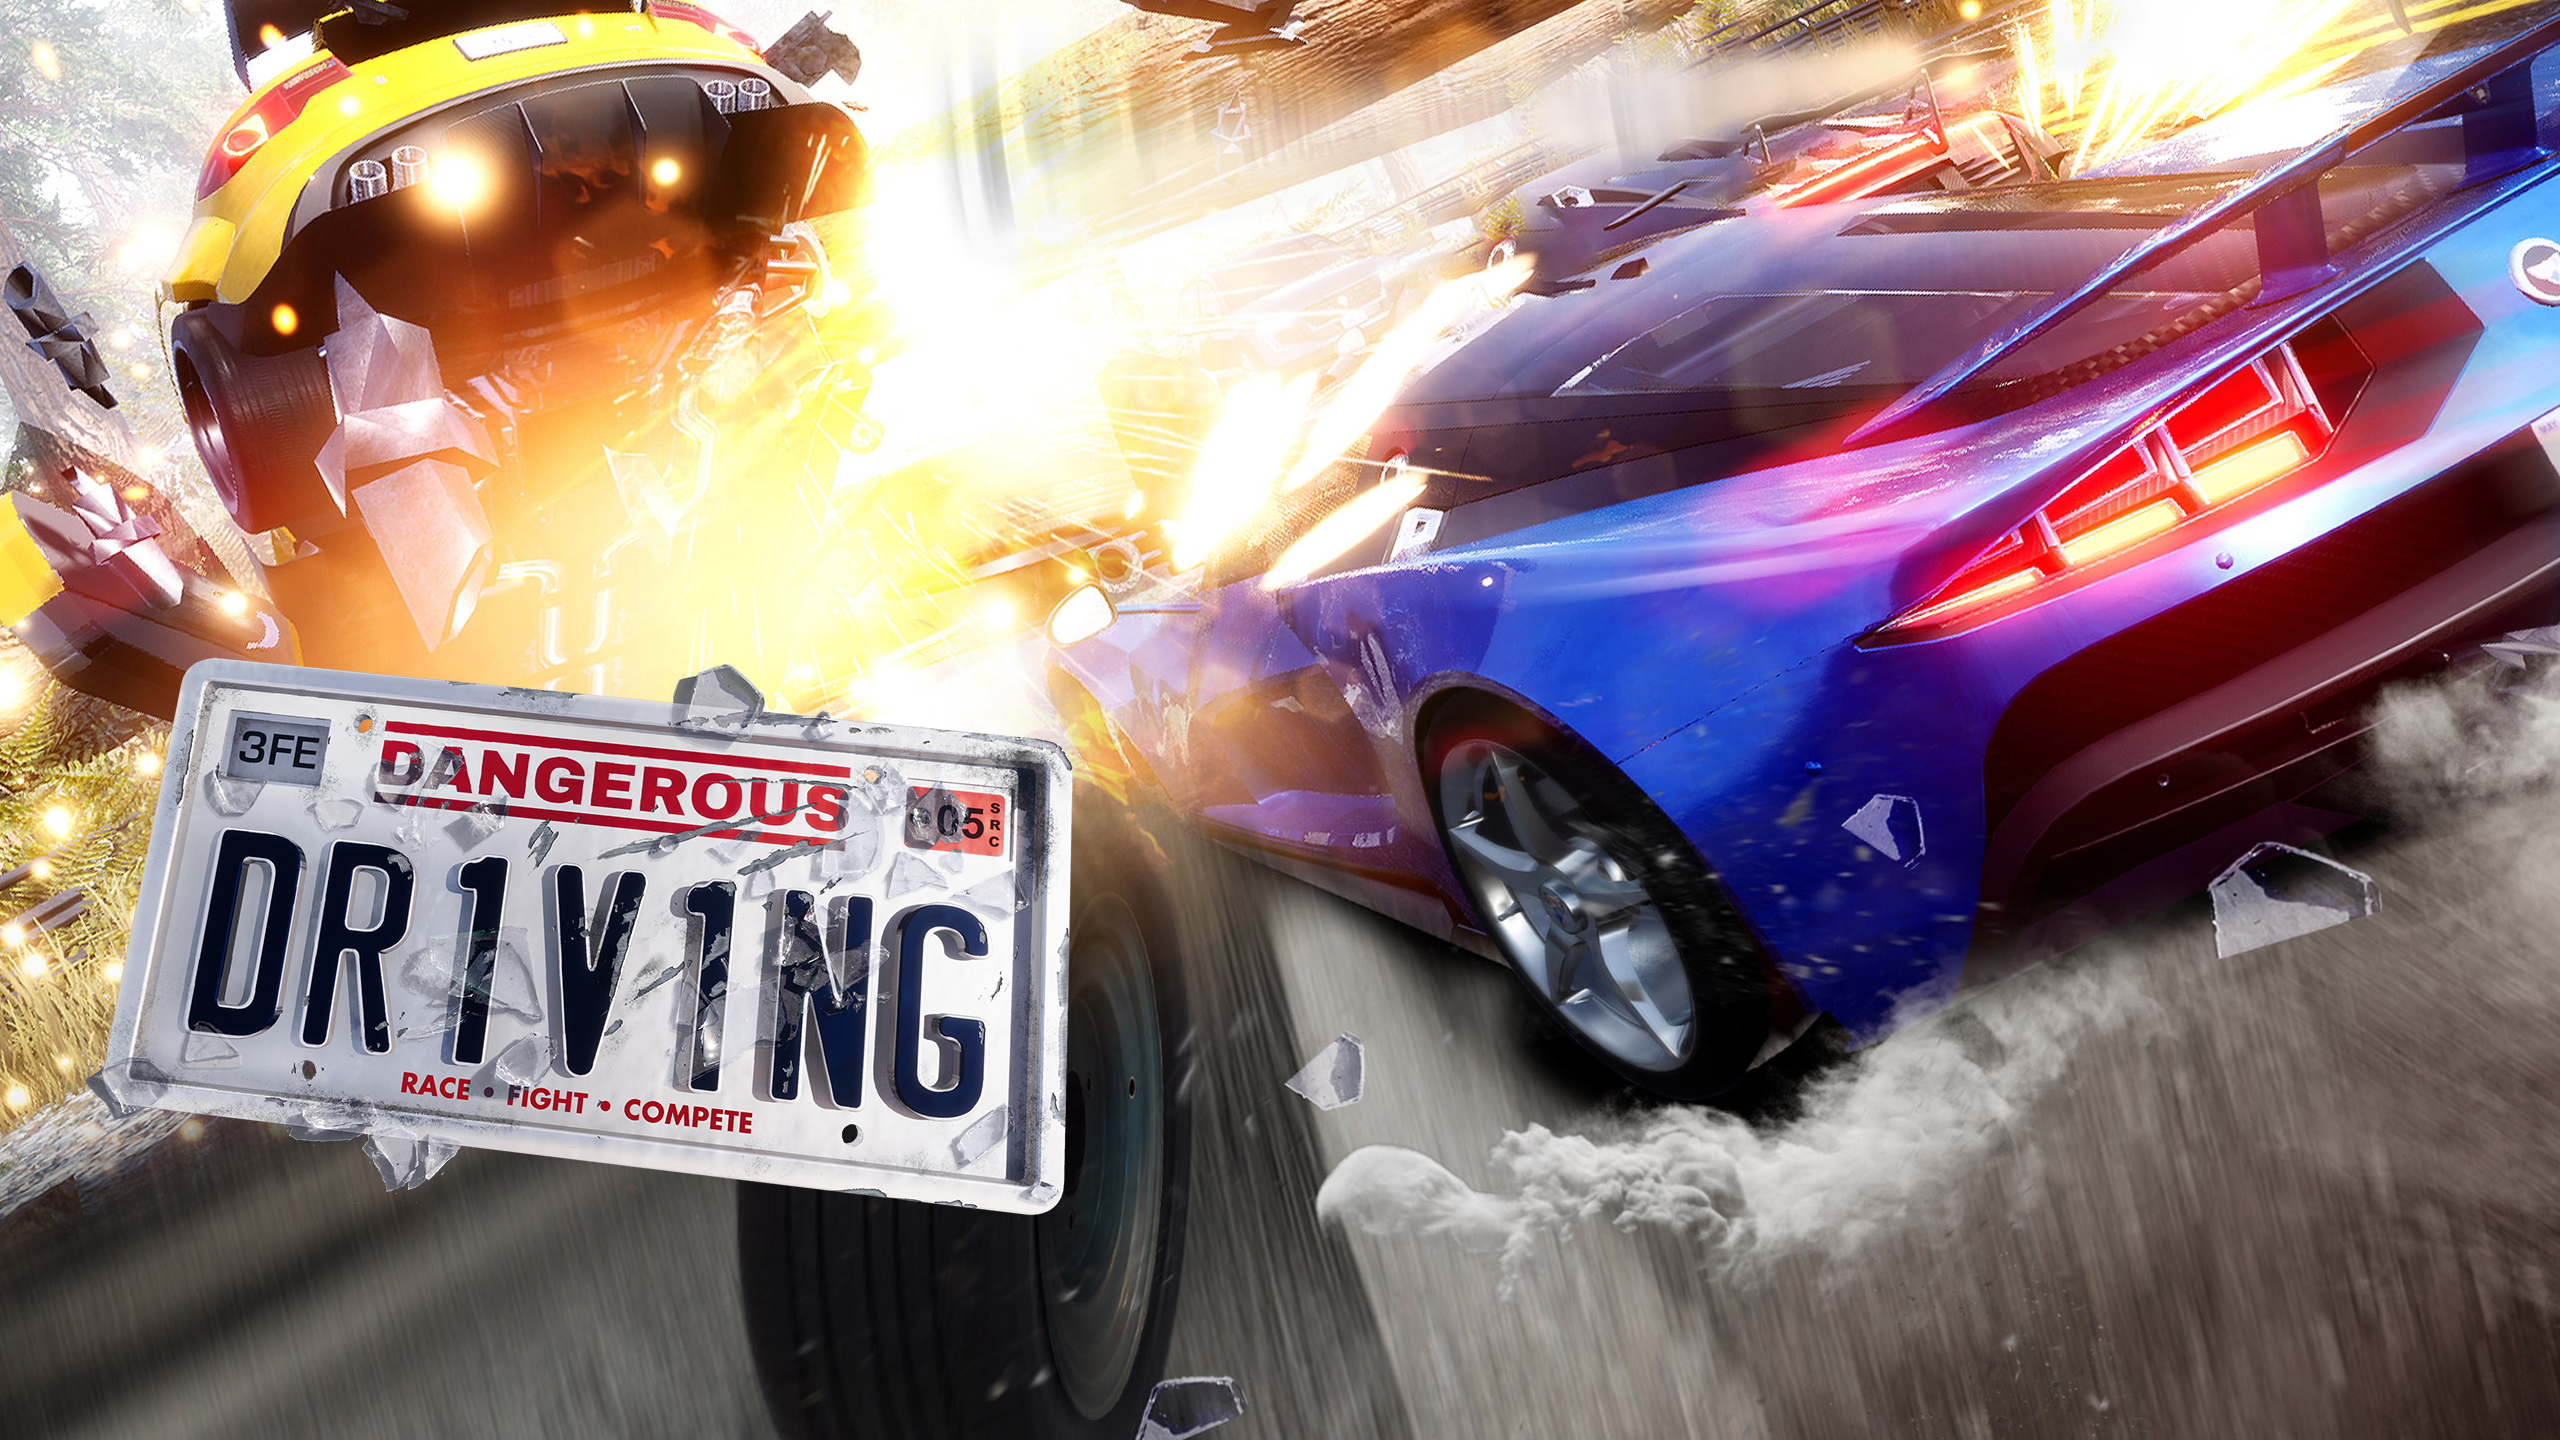 Wallpaper Dangerous Driving